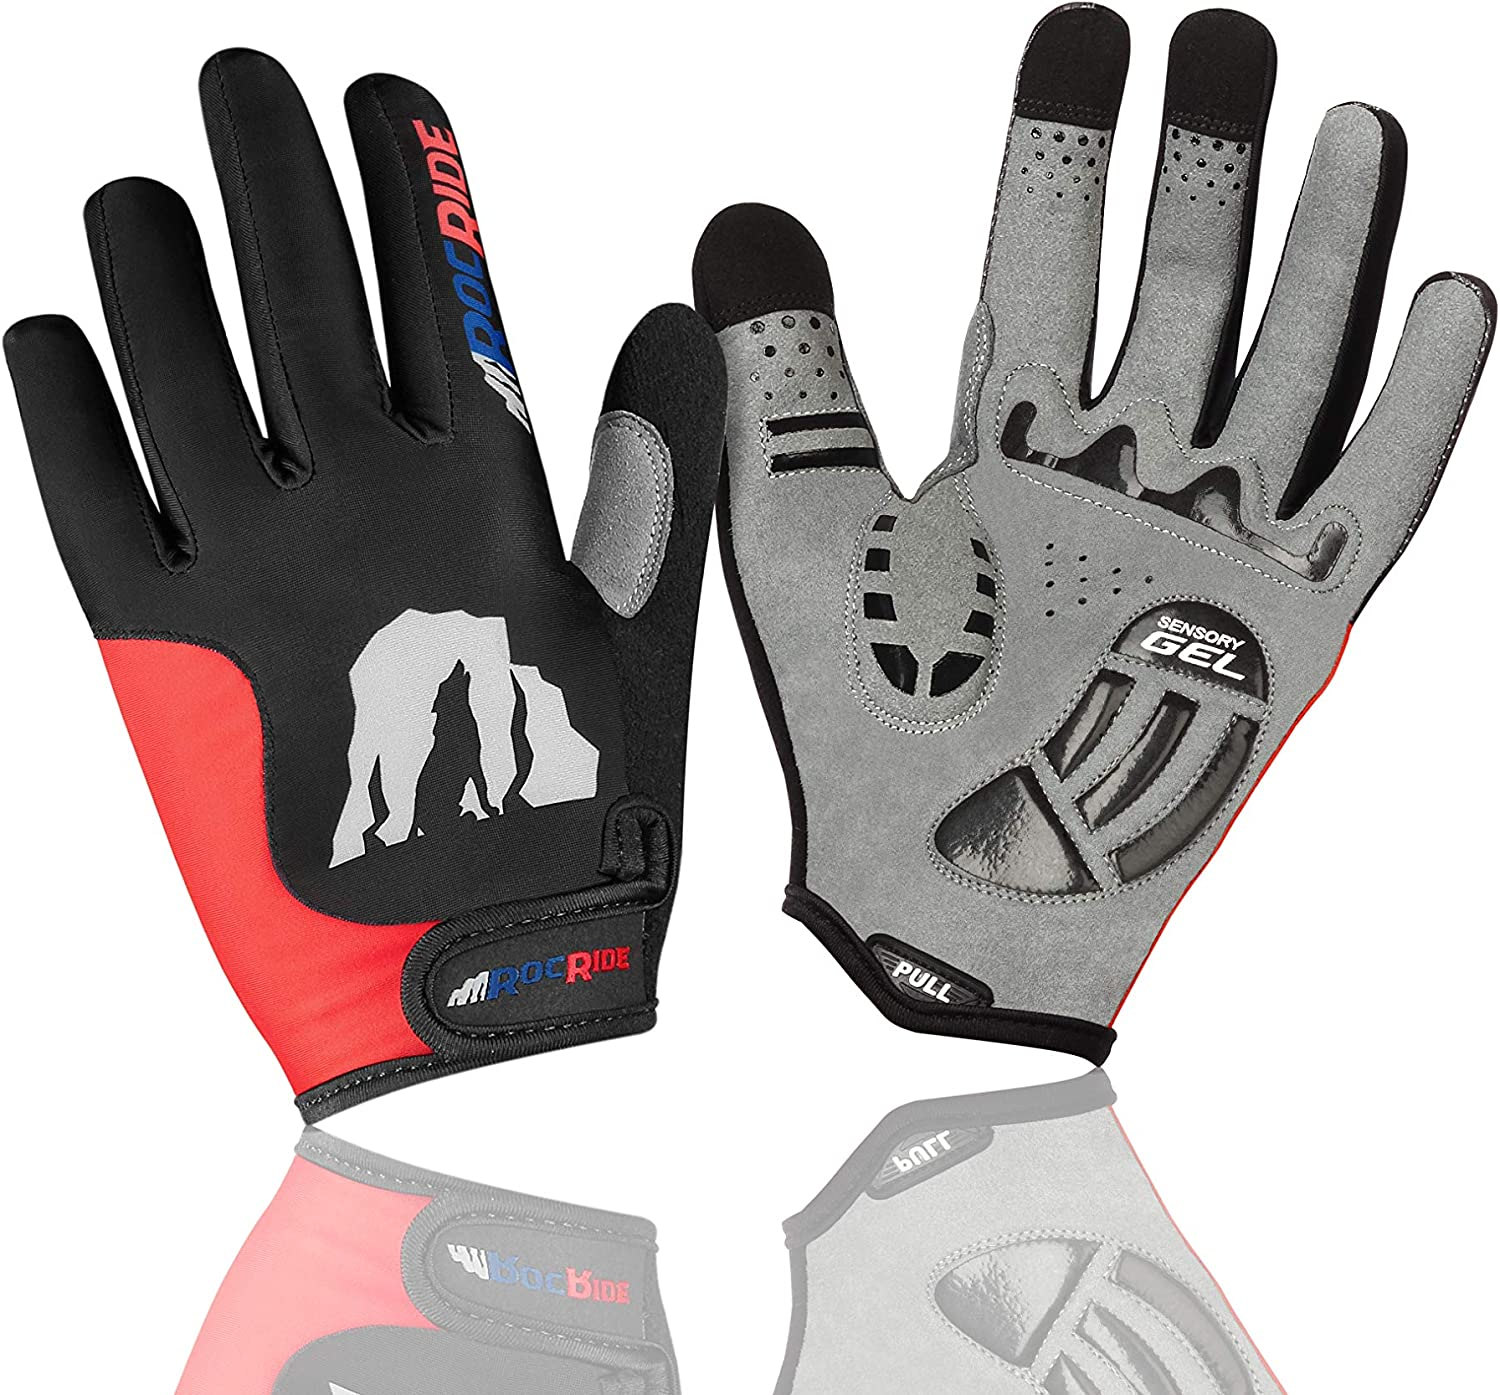 RocRide Cycling Gloves with Gel Padded Protection Full Finger with Screen Compatible Tips Men Women and Children Sizes. Road and Mountain Biking